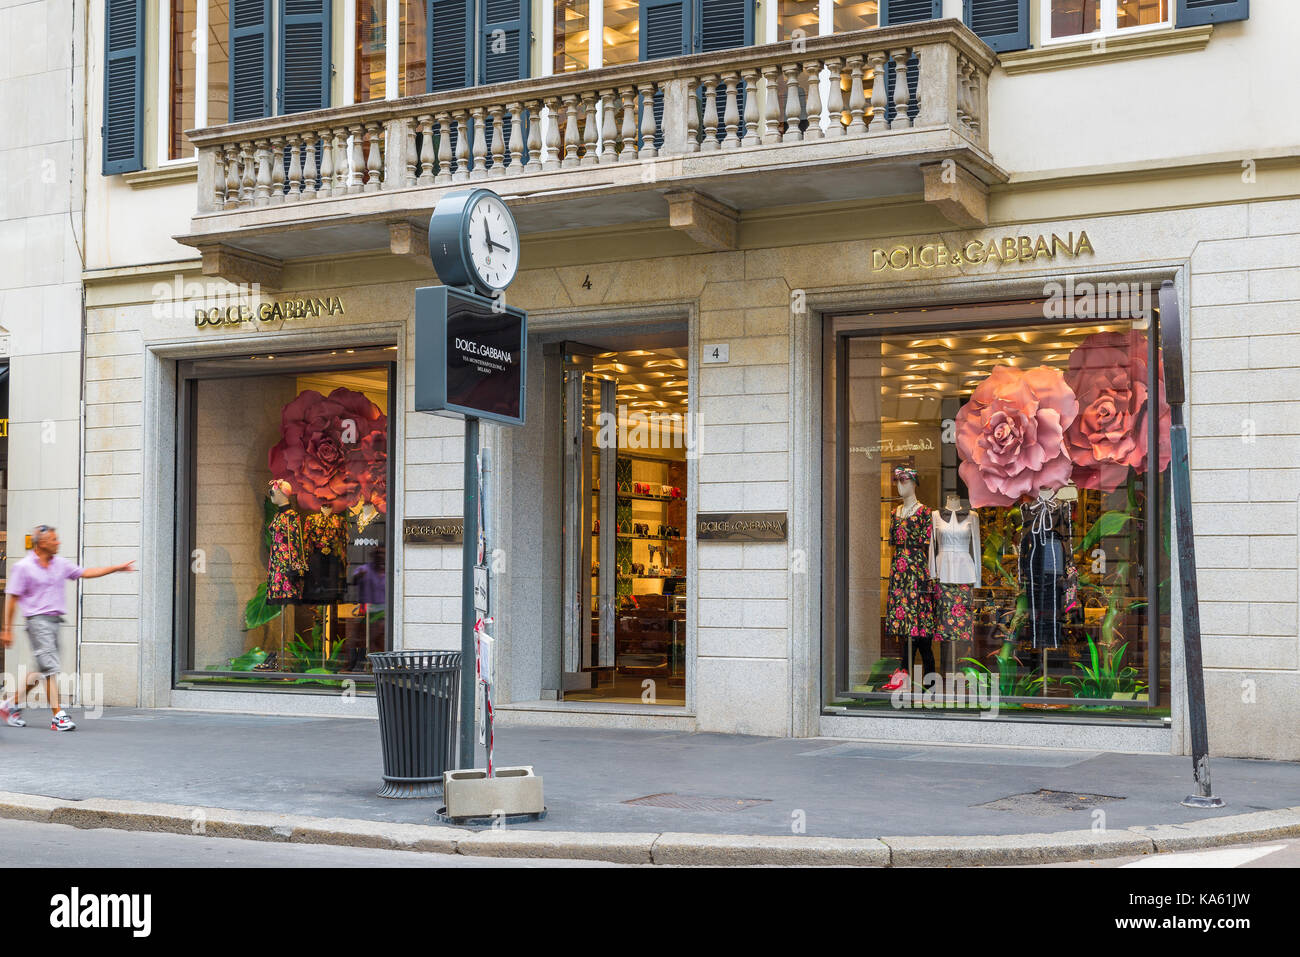 Milan, Italy - August 10, 2017: Montenapoleone street, with many famous shops. Dolce & Gabbana shop. Concept - Stock Image